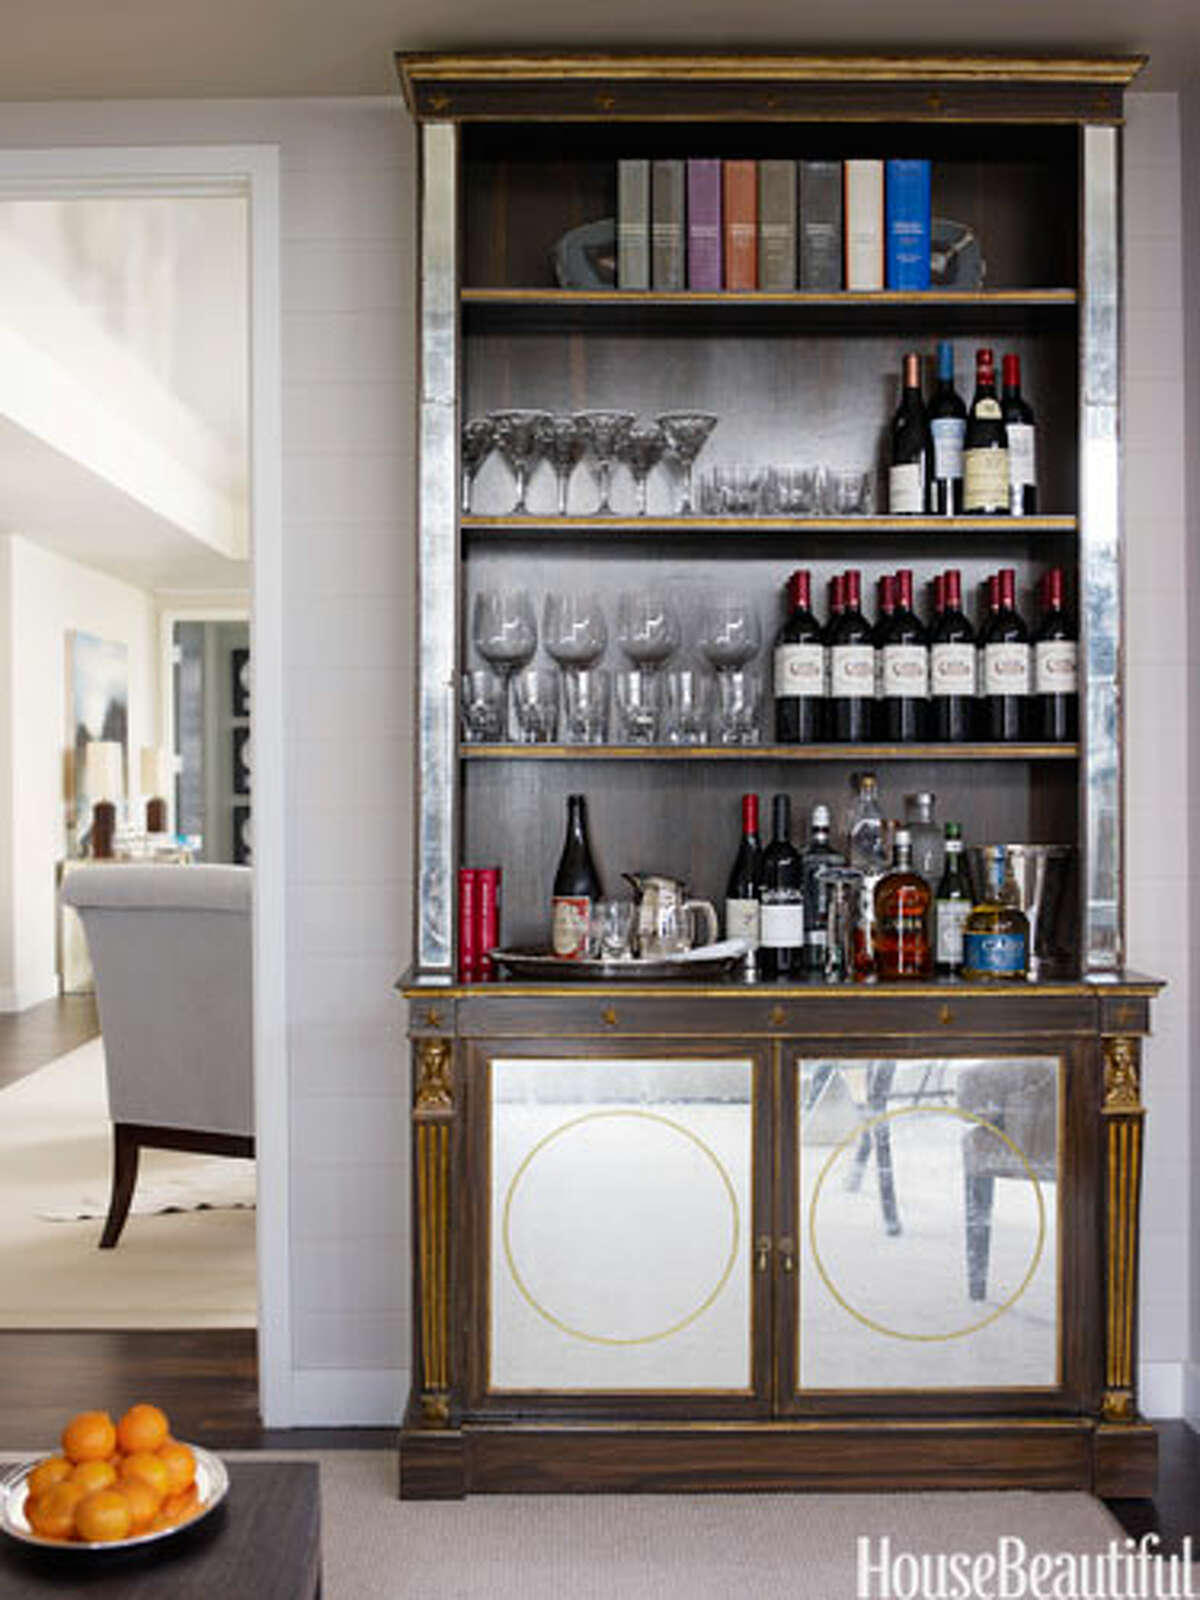 Bookcase Bar An antique bookcase doubles as a bar in this Manhattan apartment designed by Phoebe and Jim Howard. Glassware by William Yeoward Crystal.